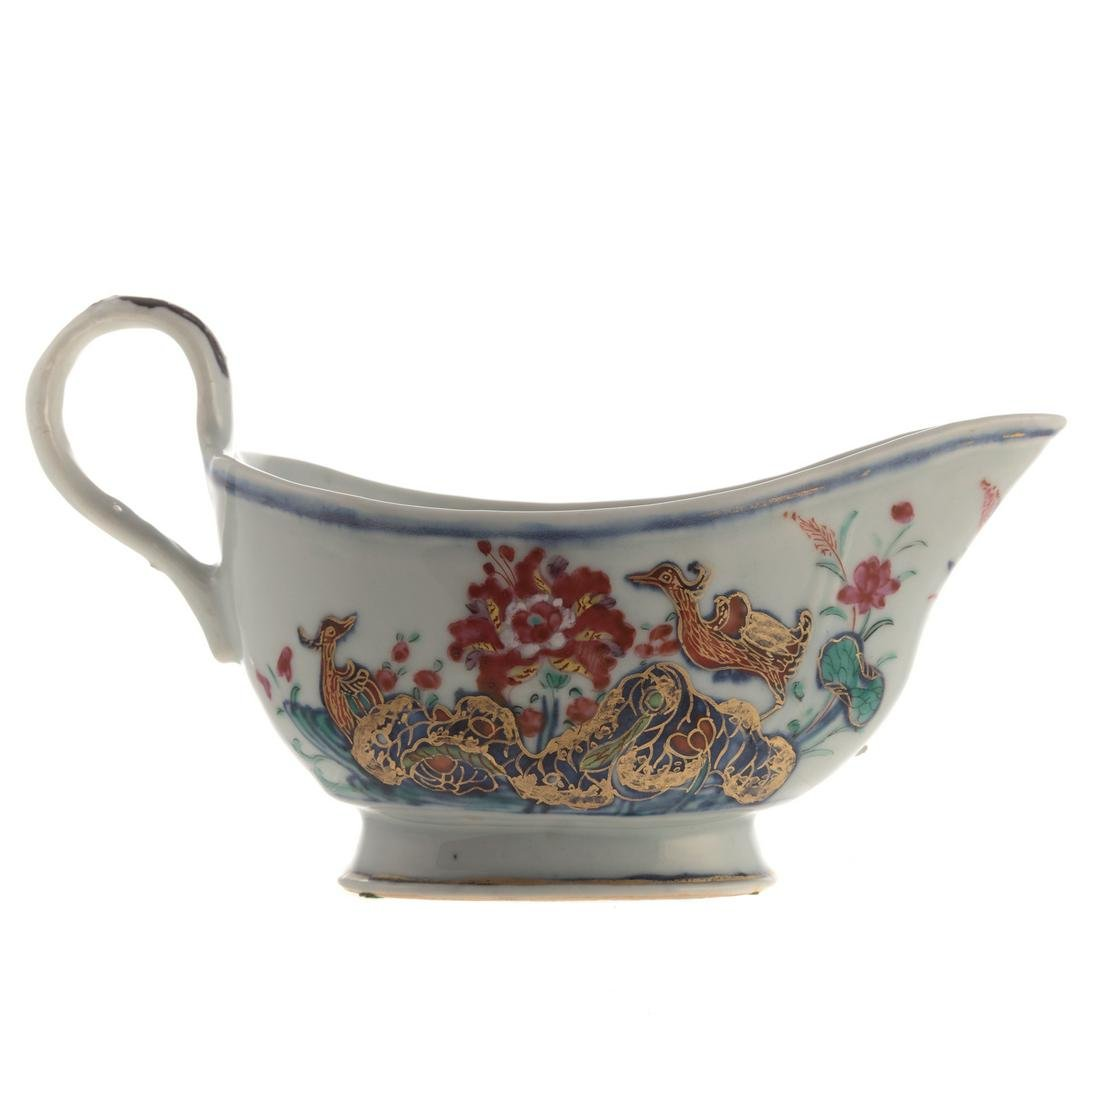 Chinese Export Tobacco Leaf Sauce Boat